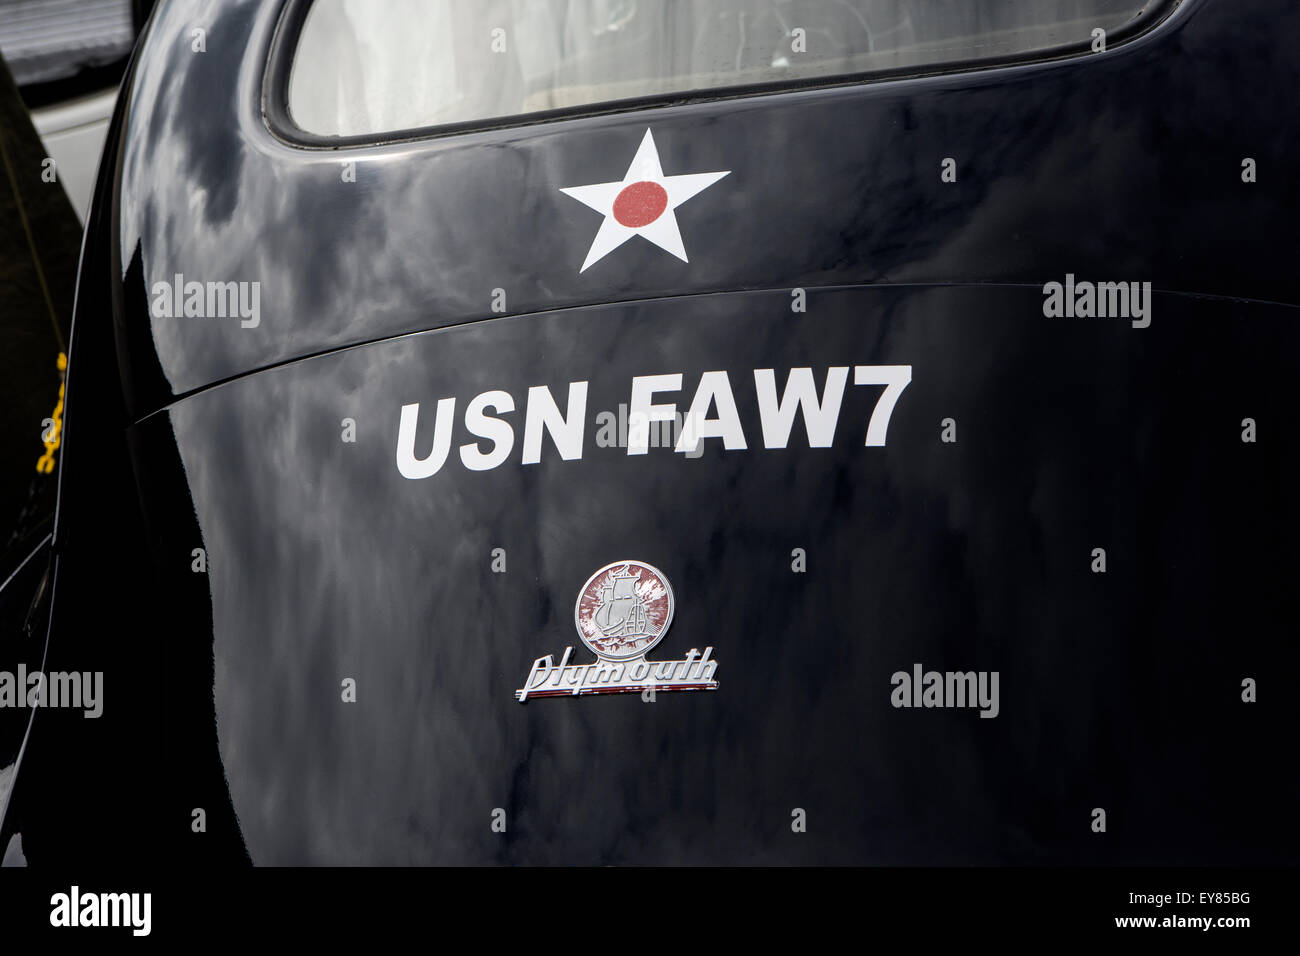 US Navy Plymouth car - Stock Image